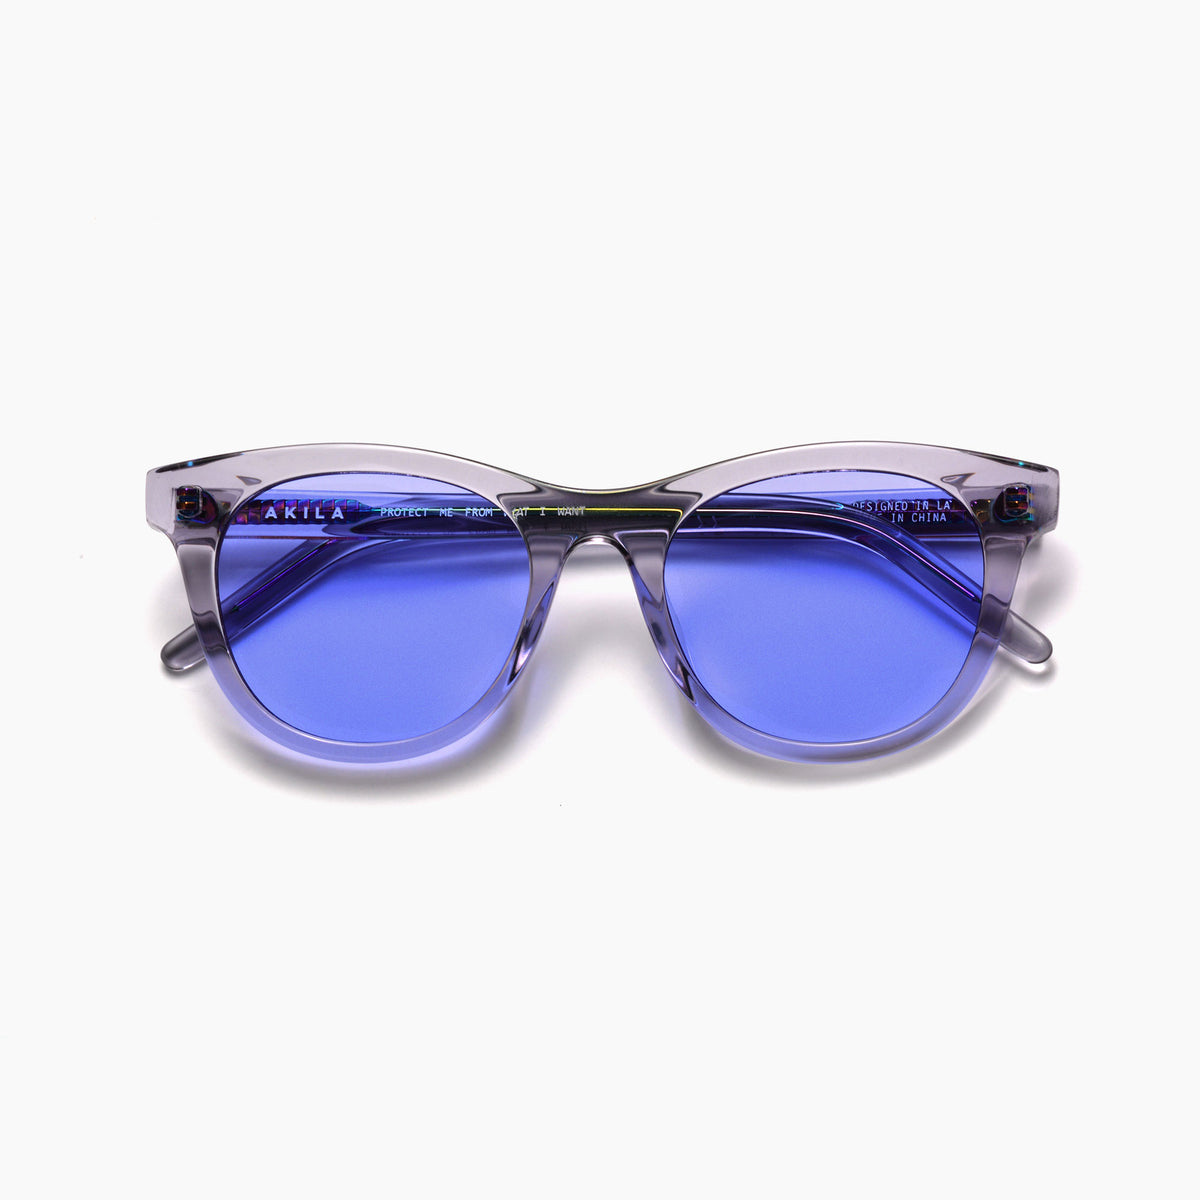 Akila Eyewear Studio Eclipse Sunglasses in Haze Grey / Violet